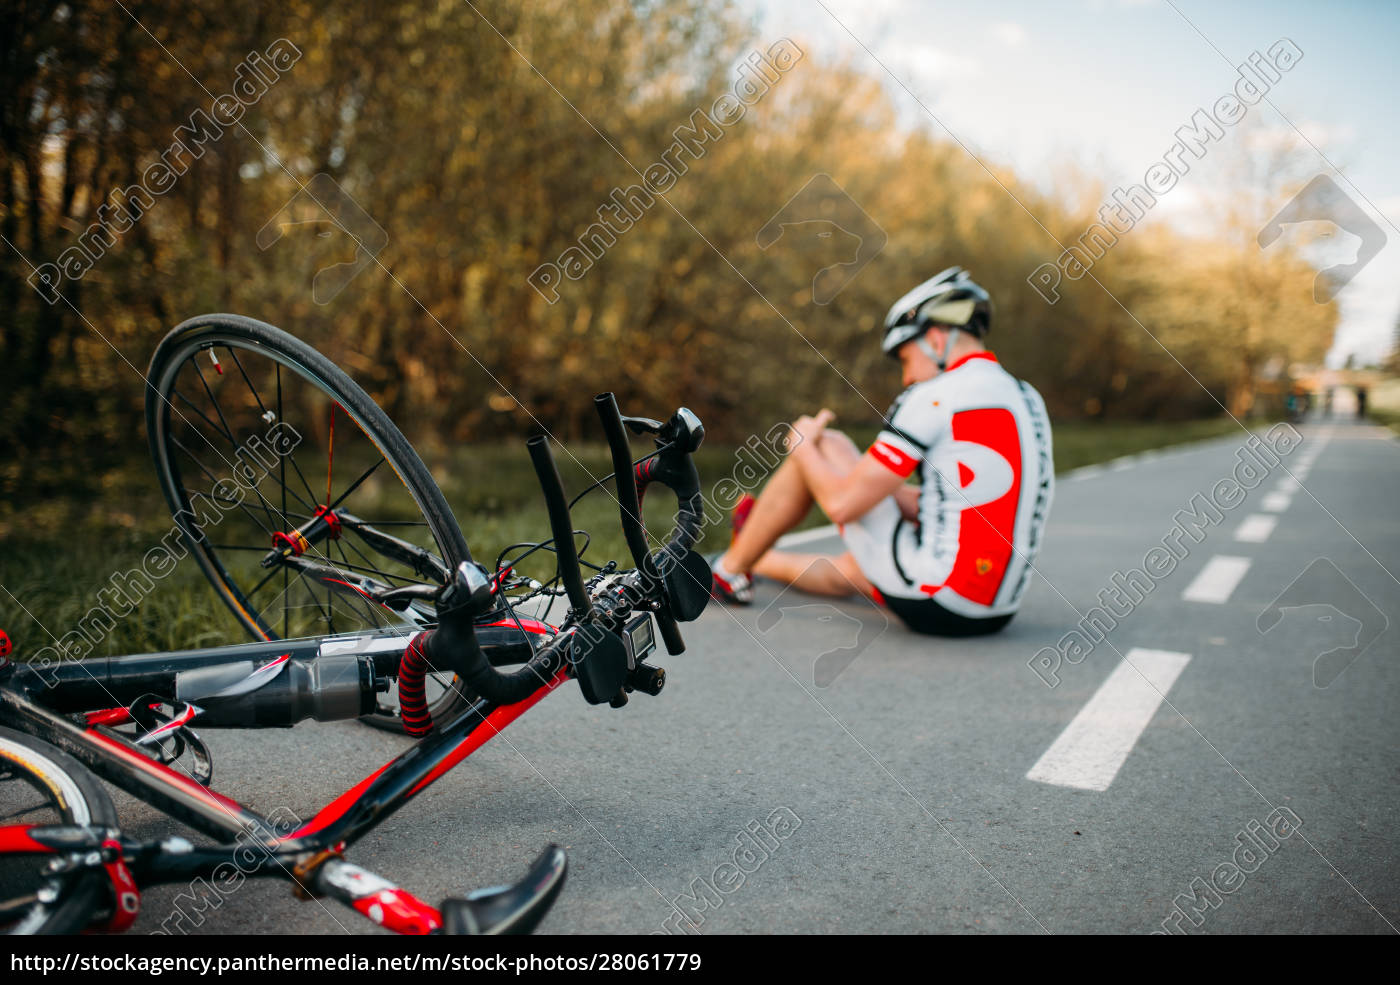 male, bycyclist, fell, off, bike, and - 28061779